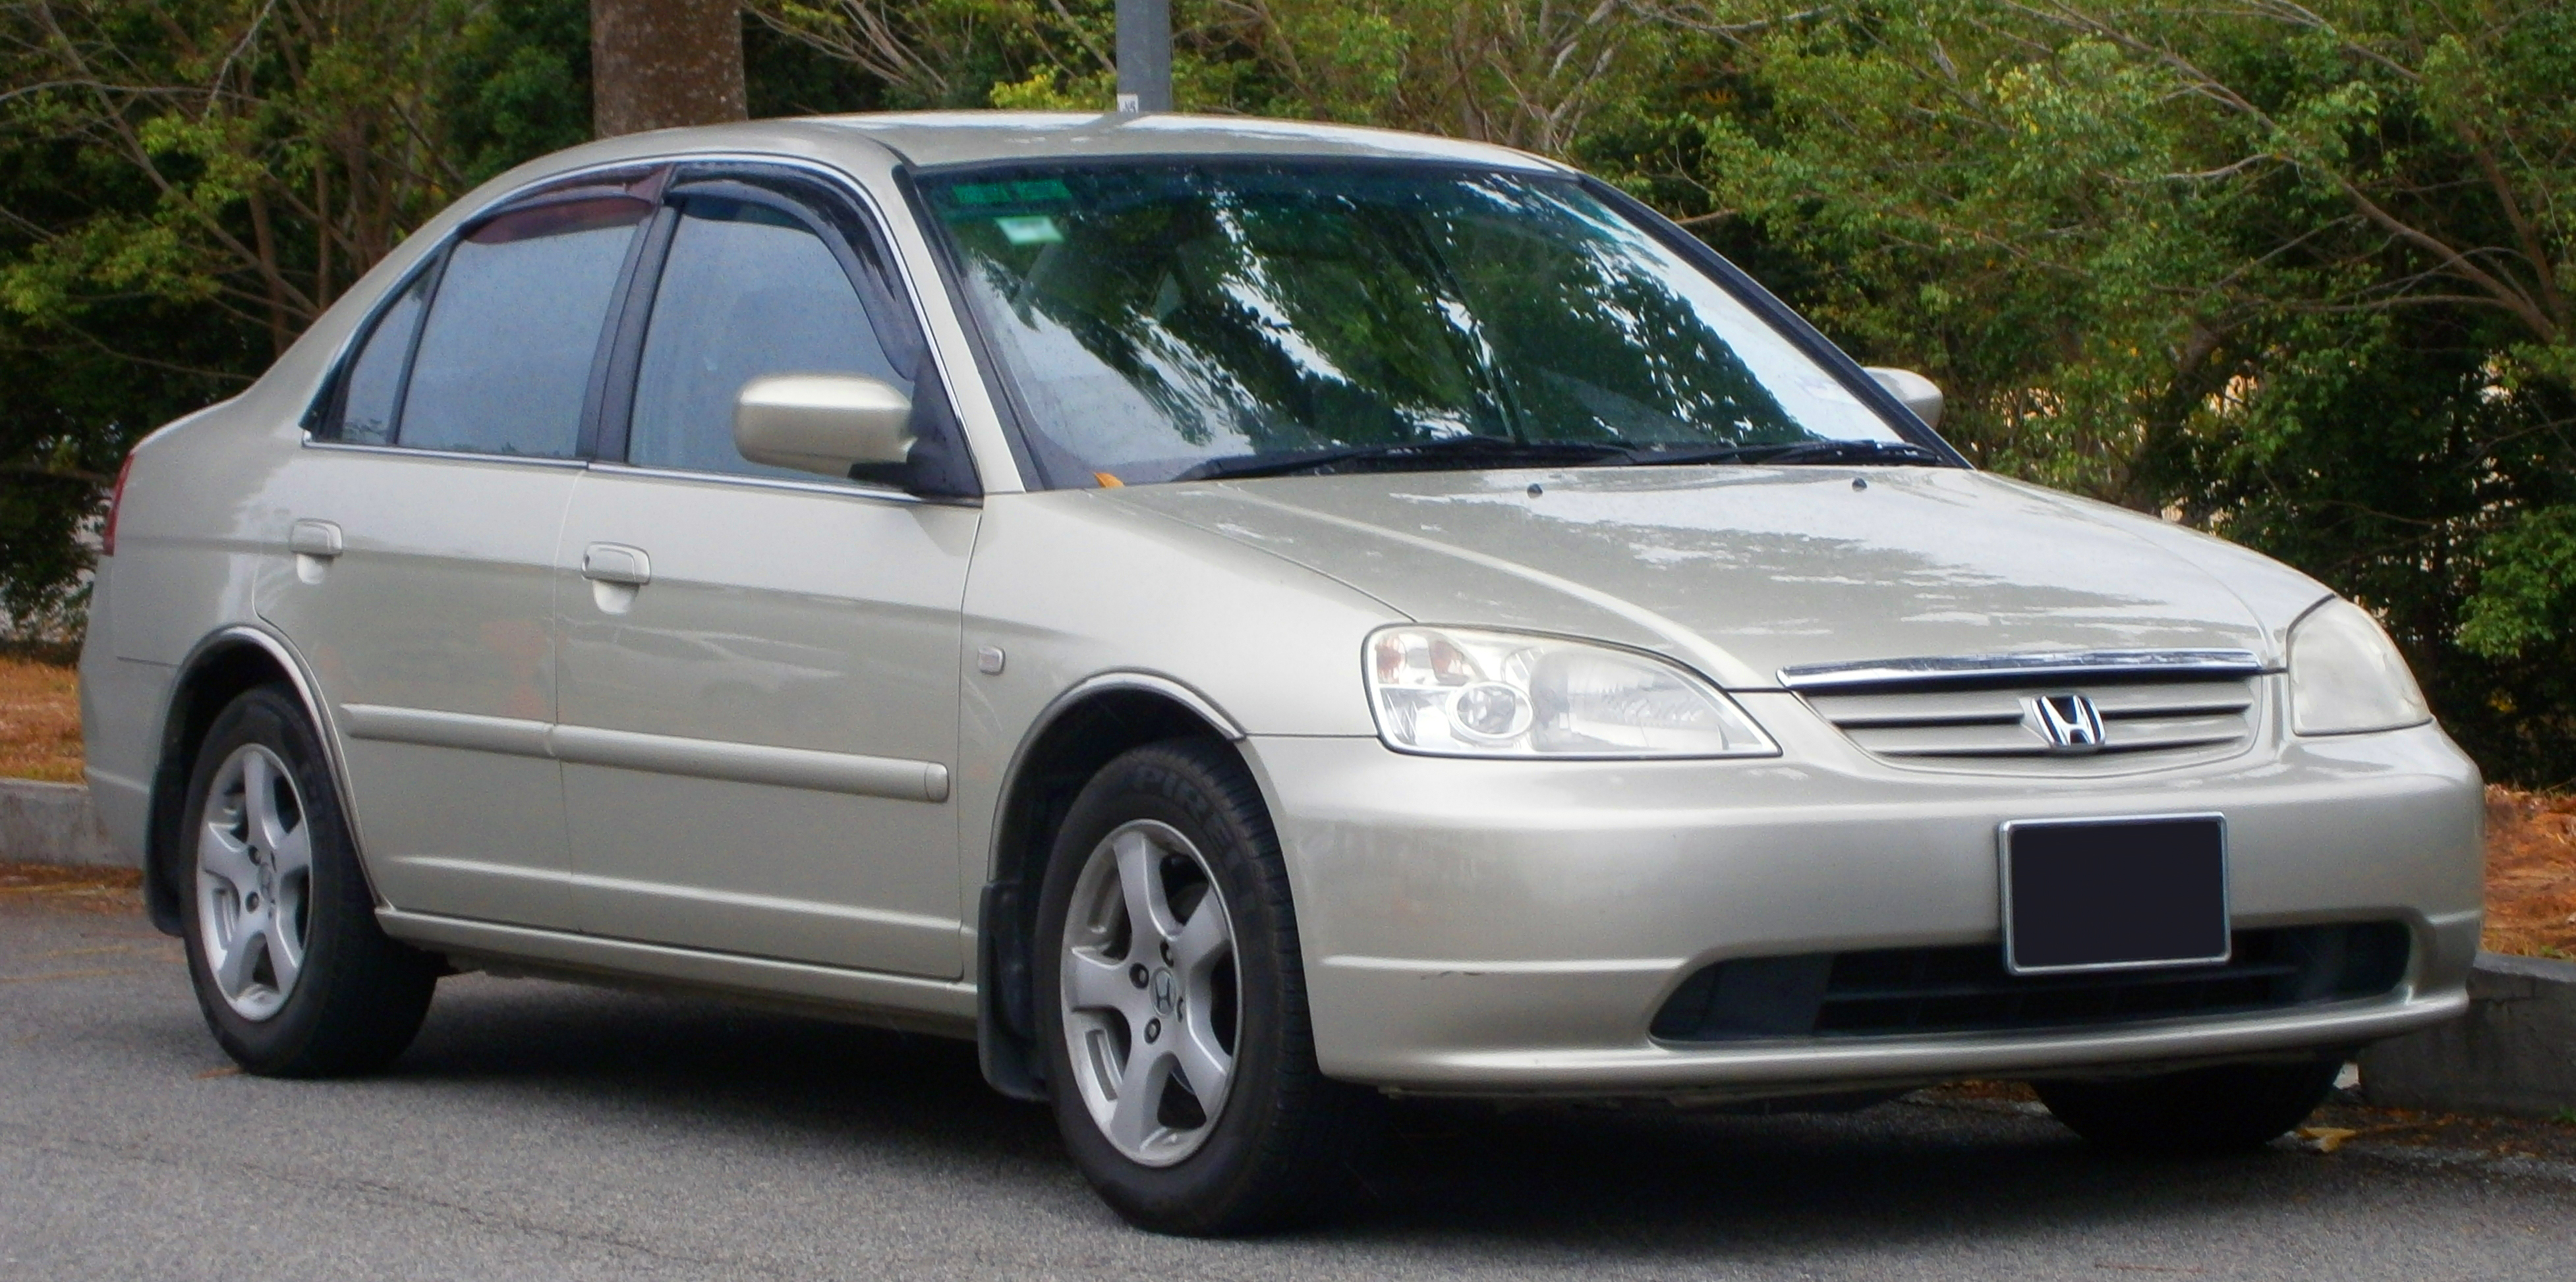 2001 Honda Civic #5